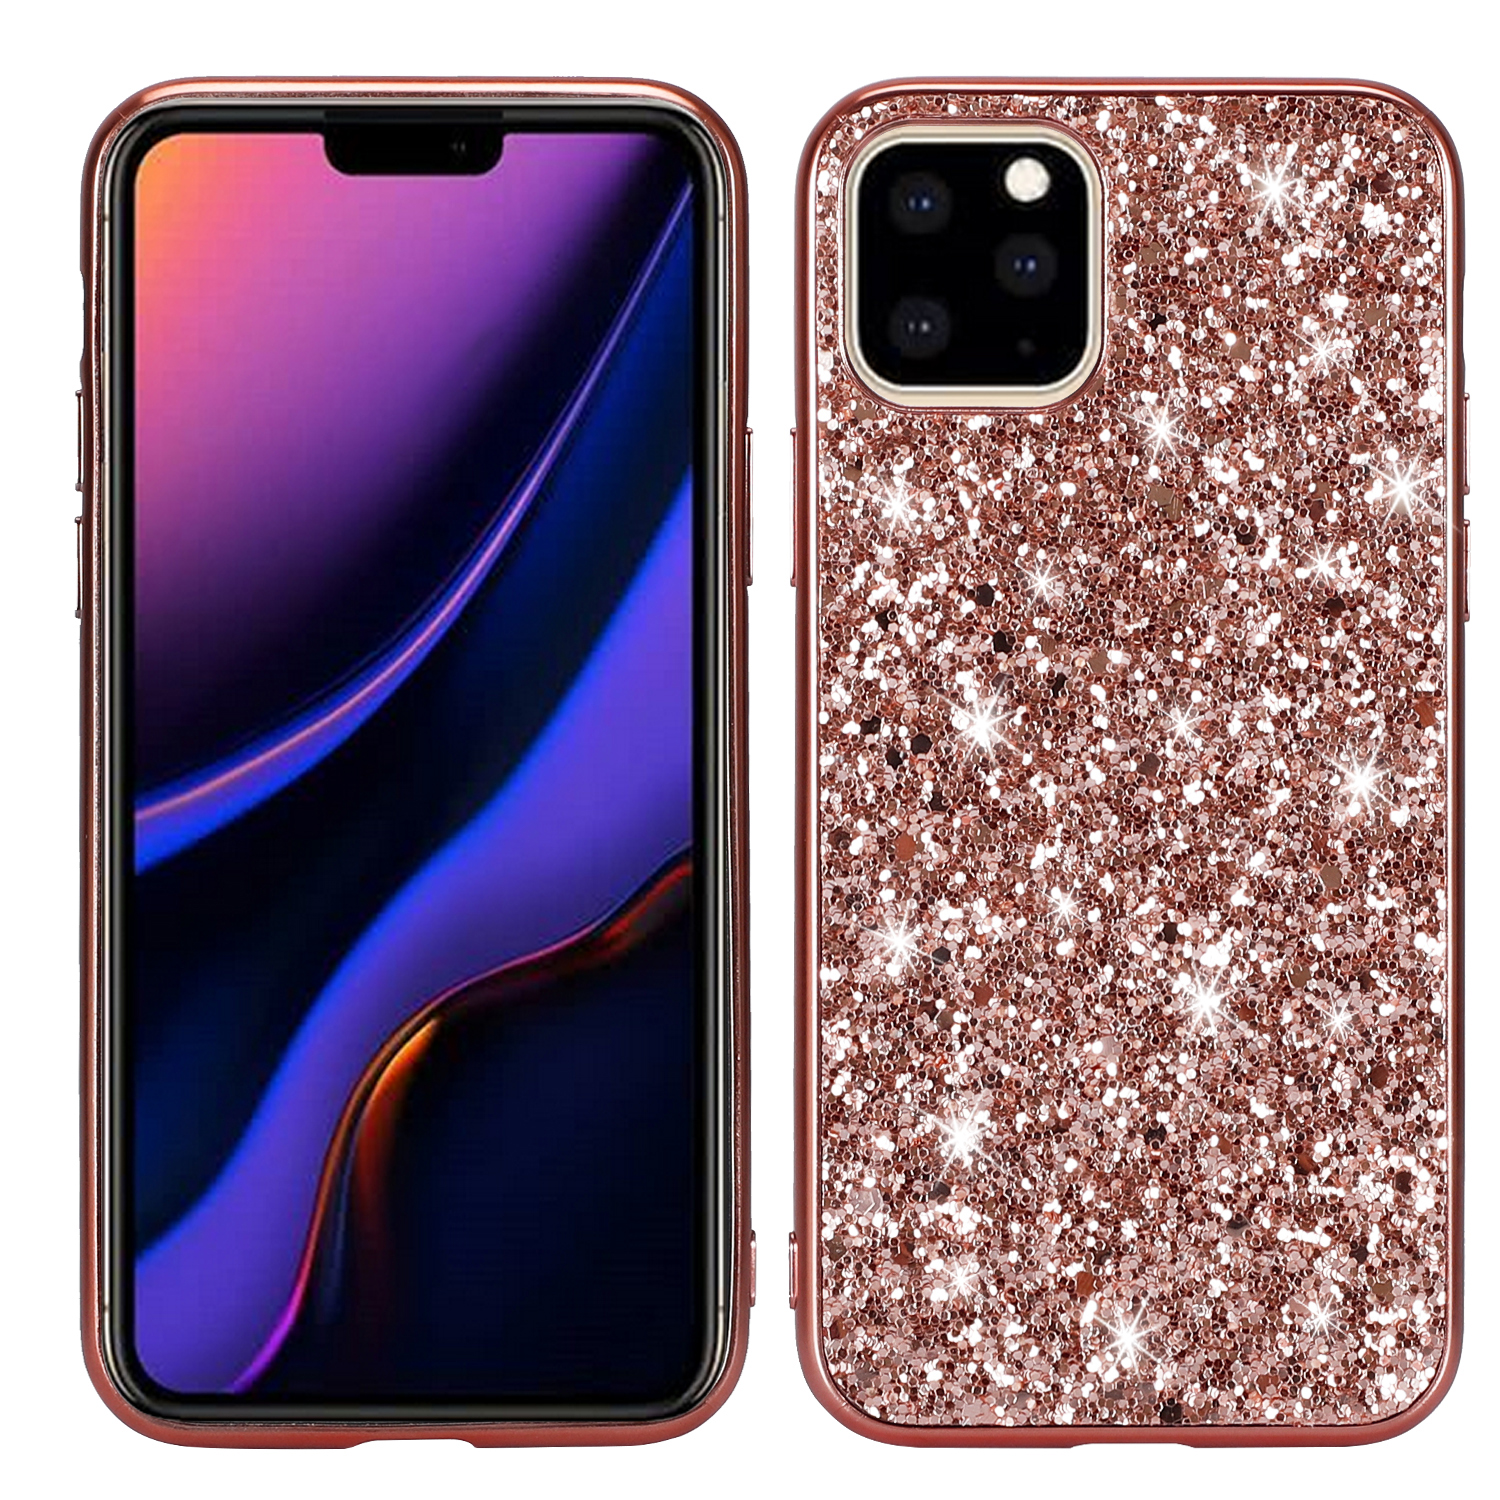 Shiny Glitter Girls Case for iPhone 11/11 Pro/11 Pro Max 30